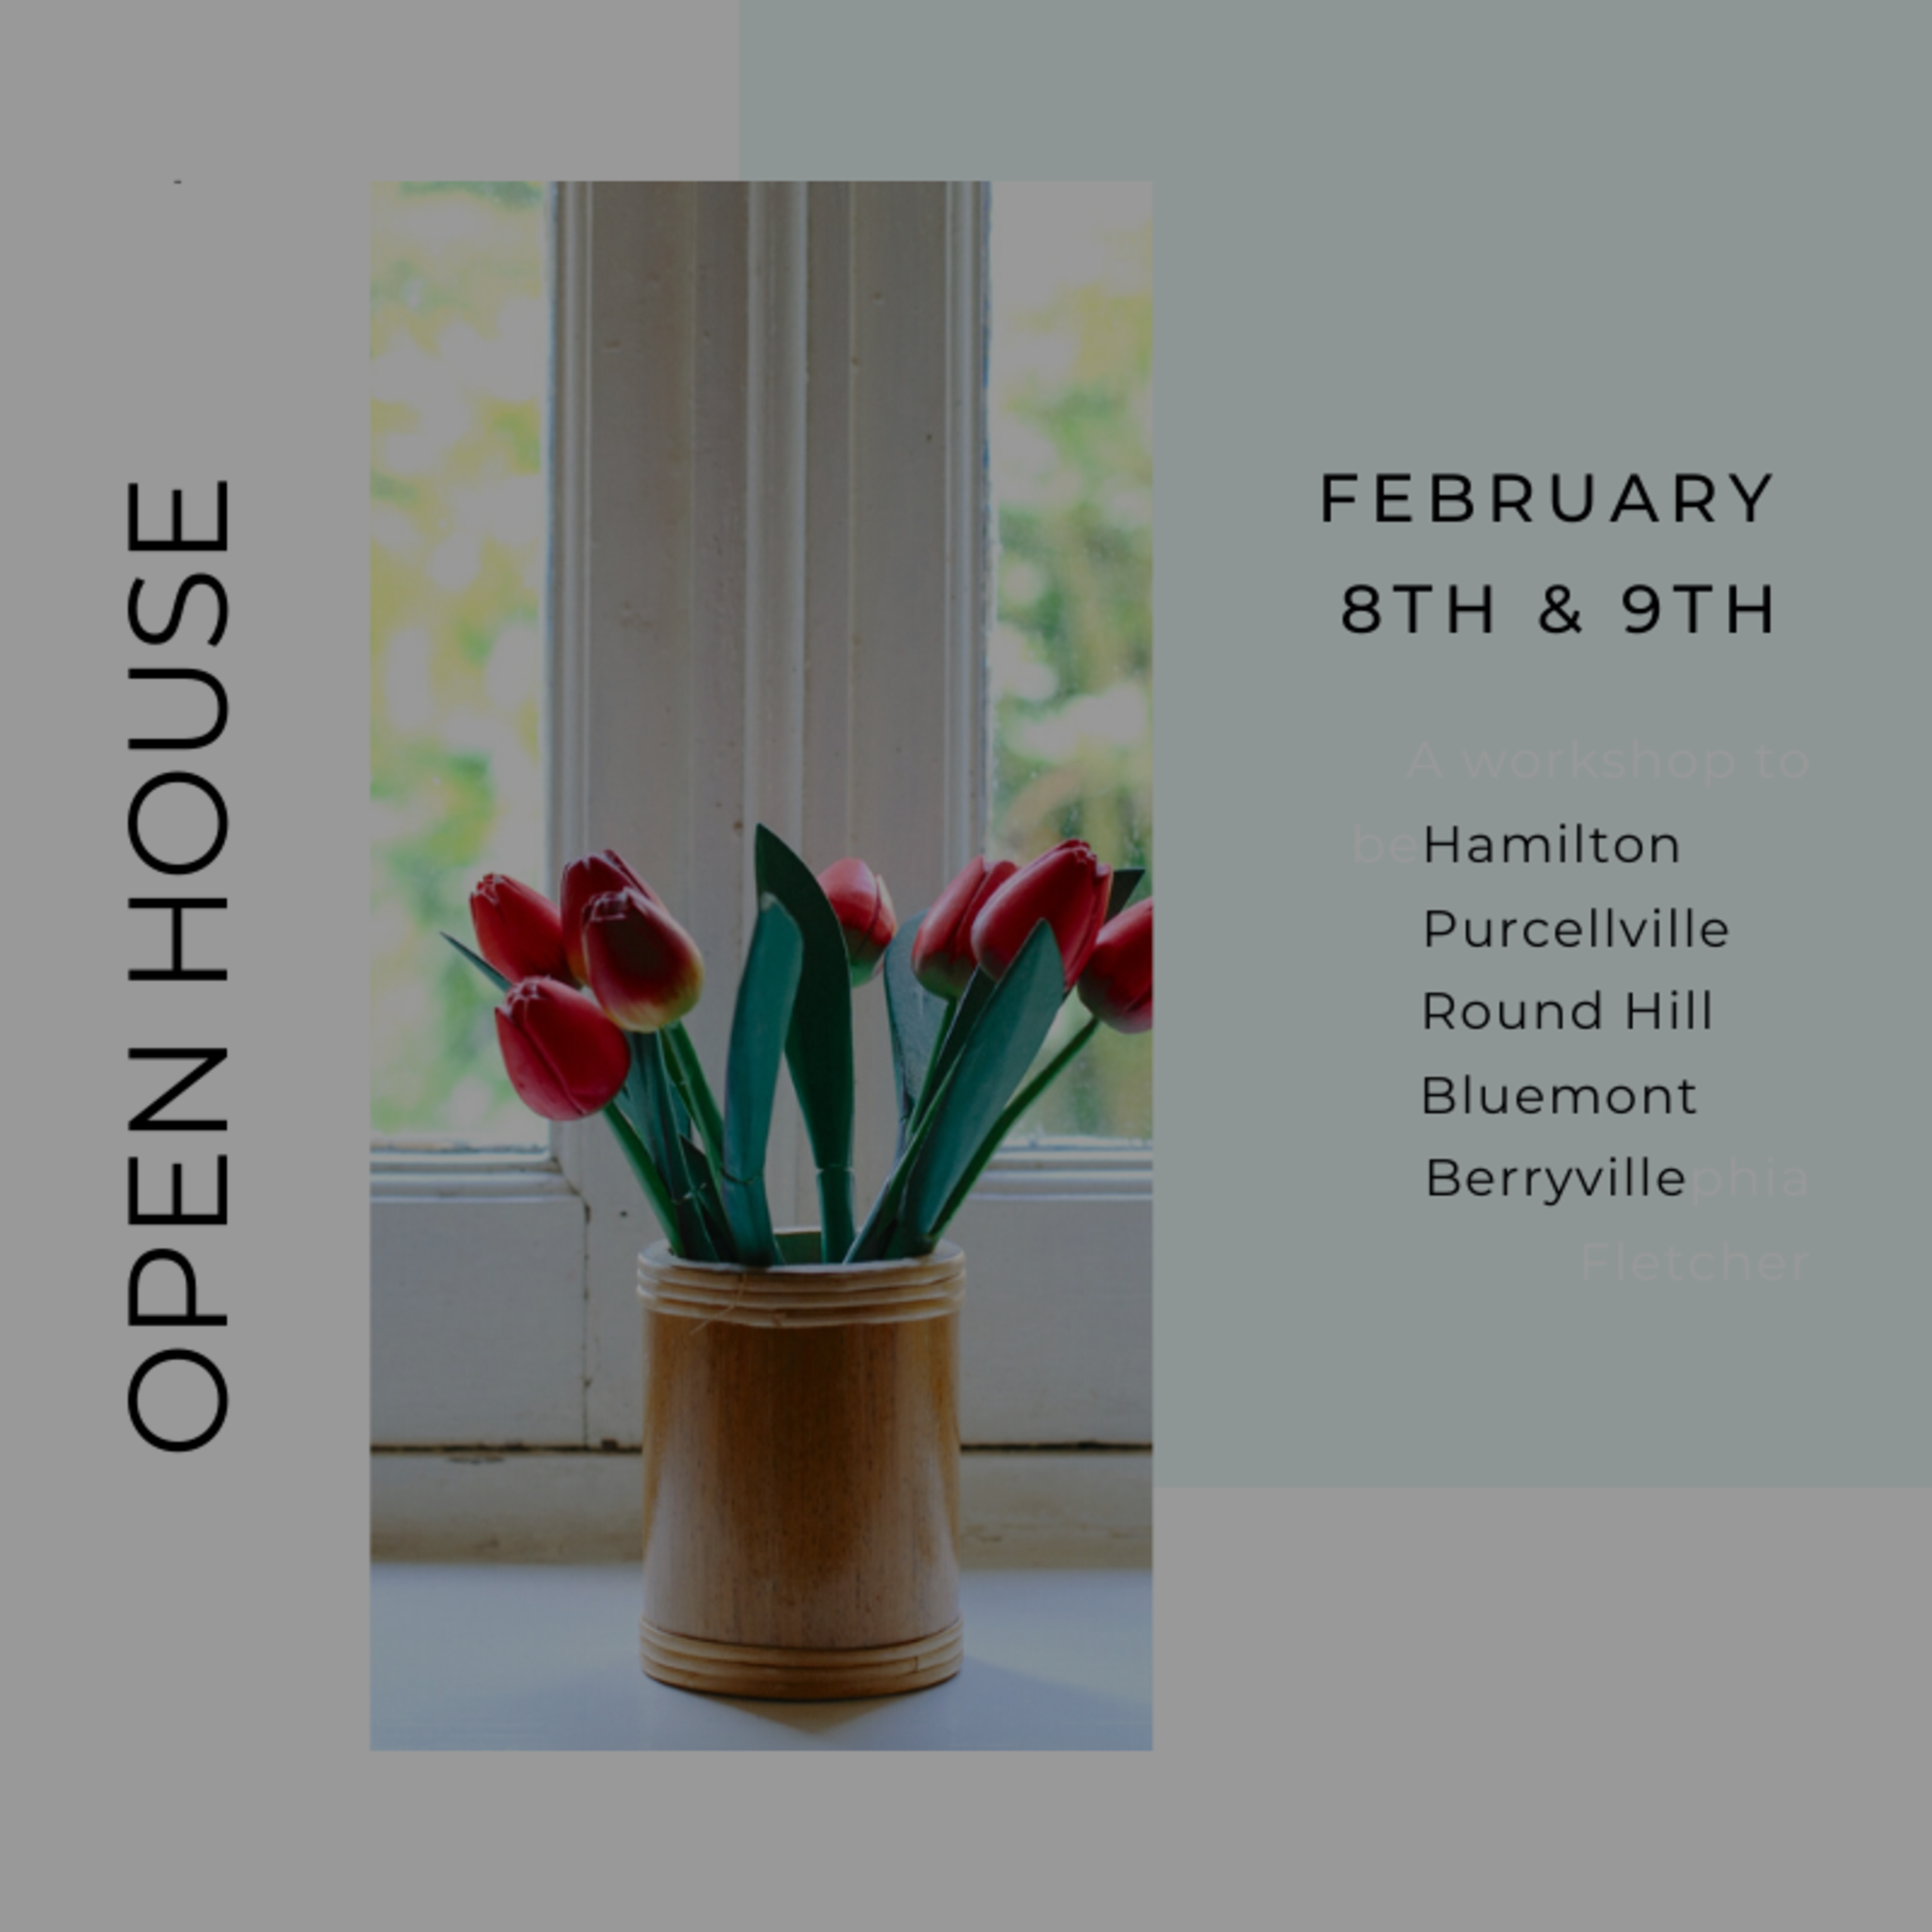 OPEN HOUSE LIST 2/7/20 – 2/8/20